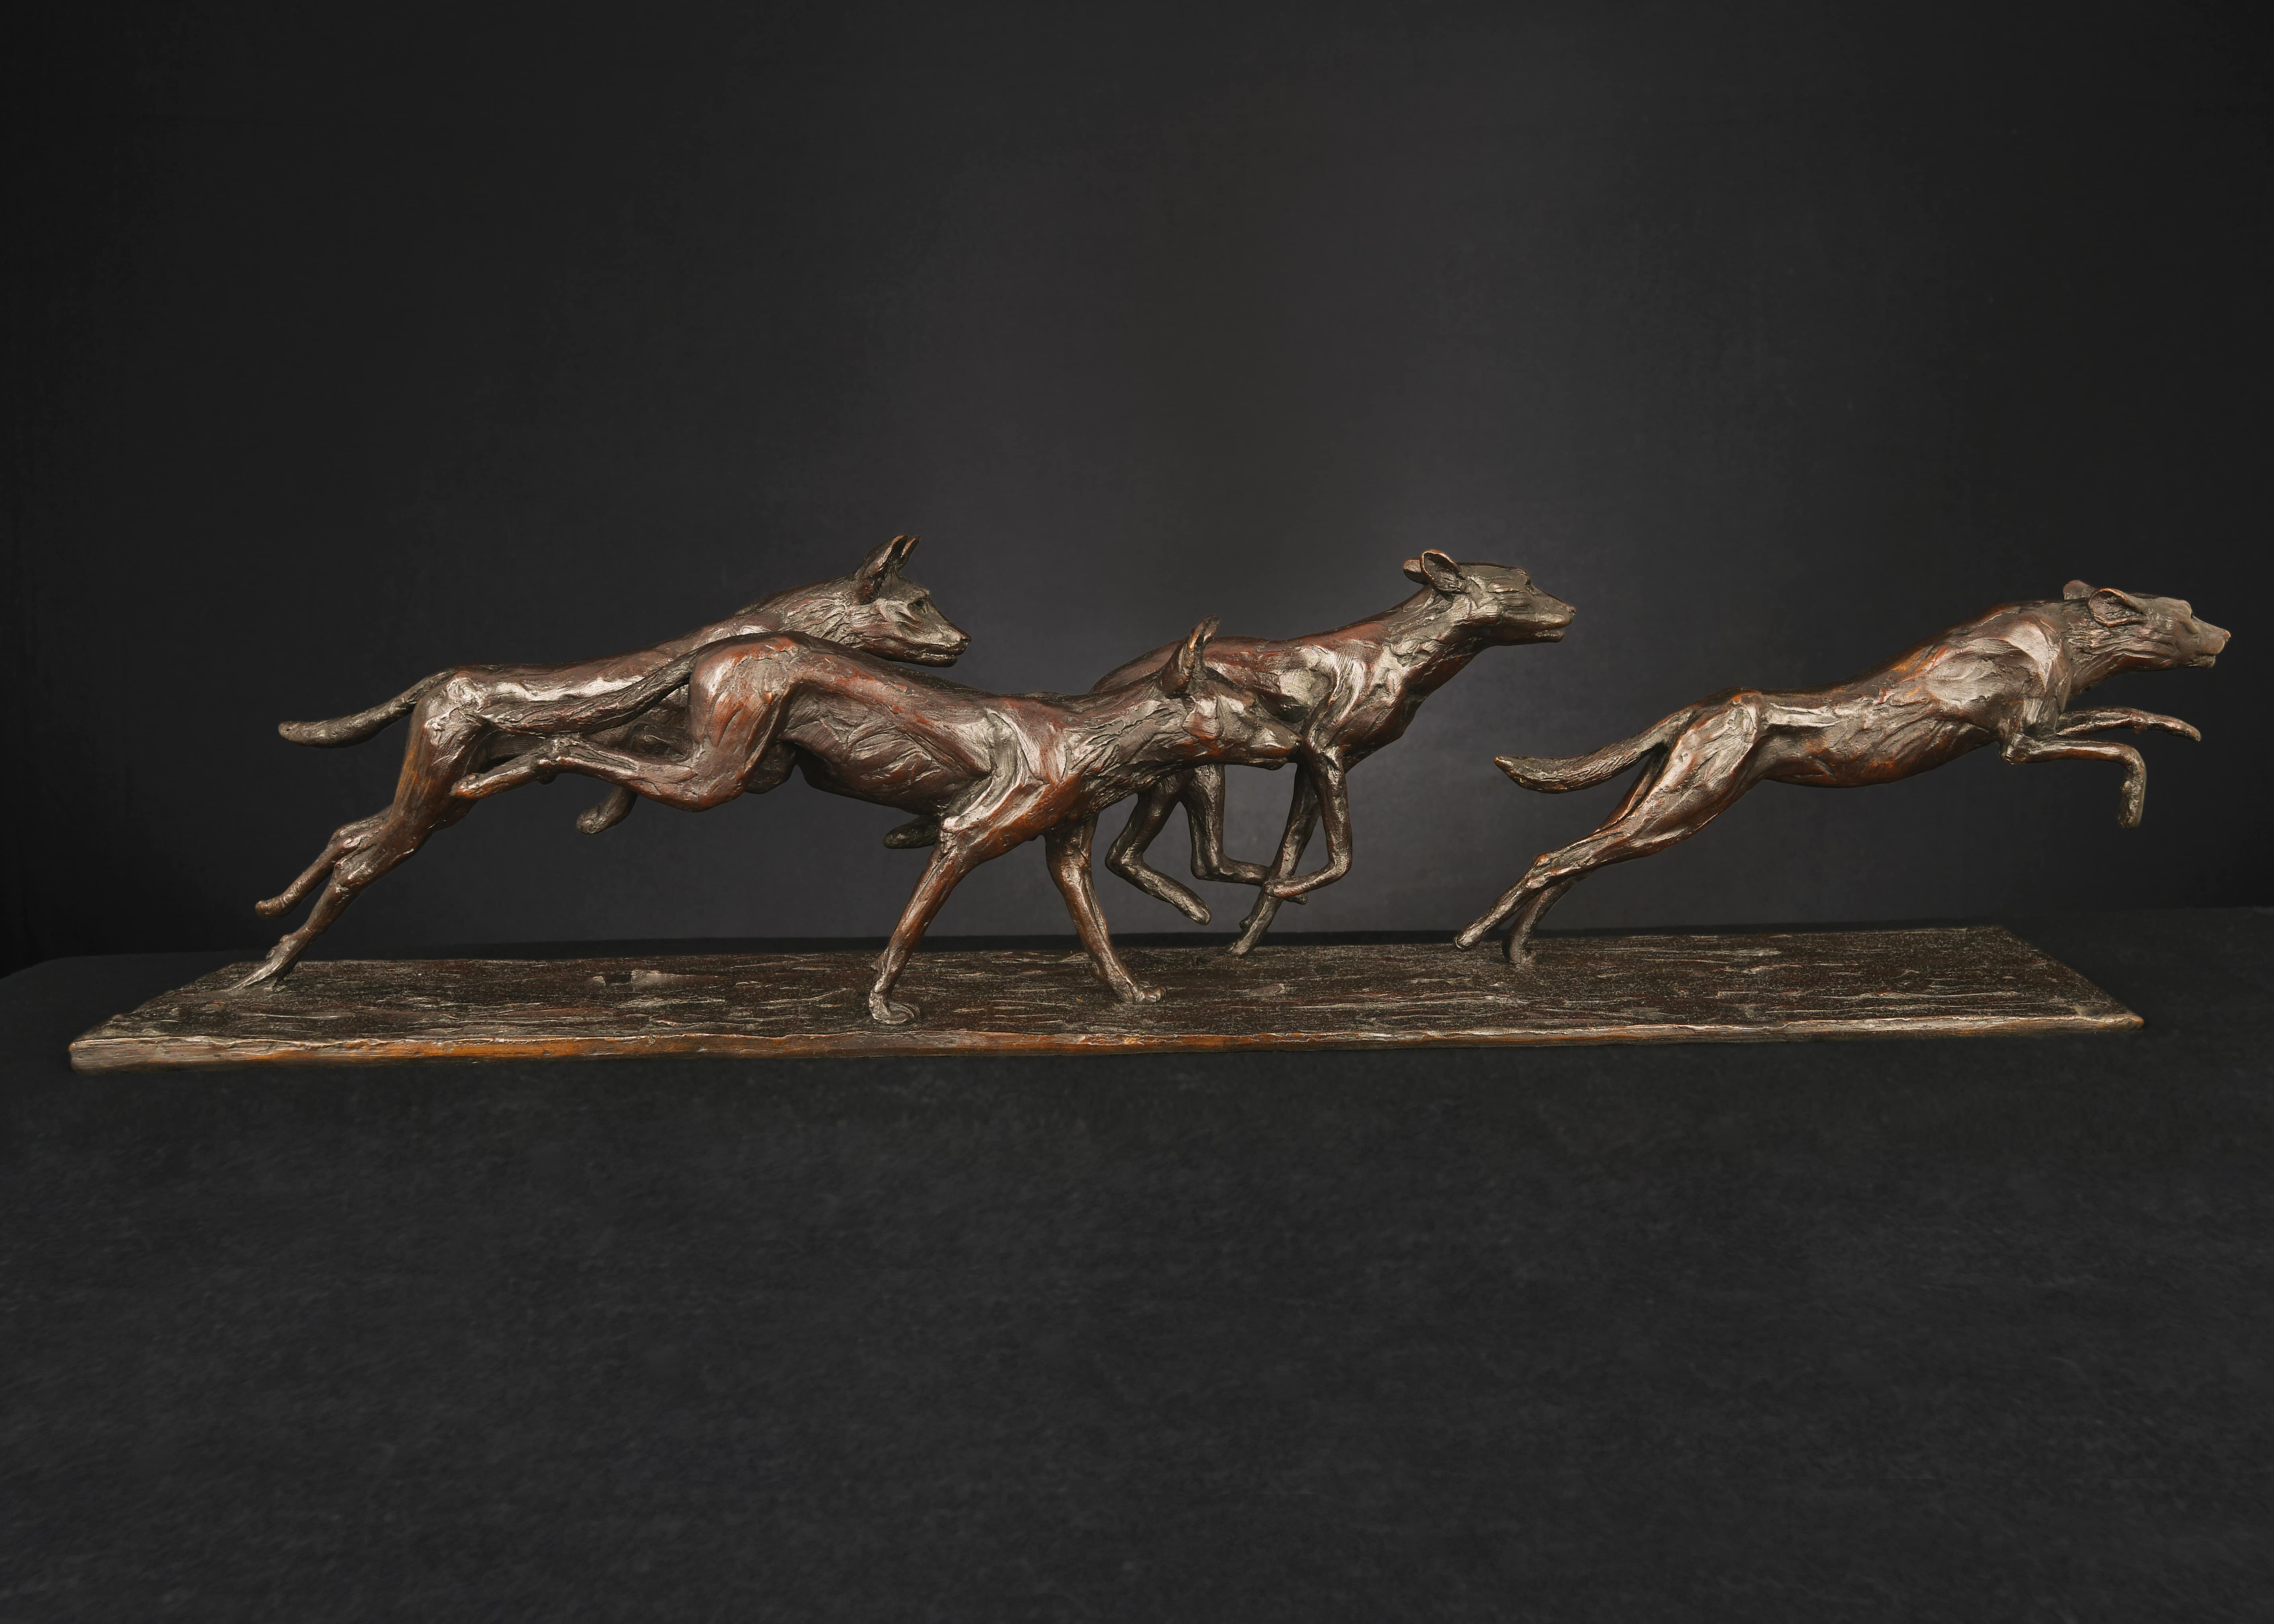 Bruce Little, bronze sculpture of a pack of wild dogs on the hunt